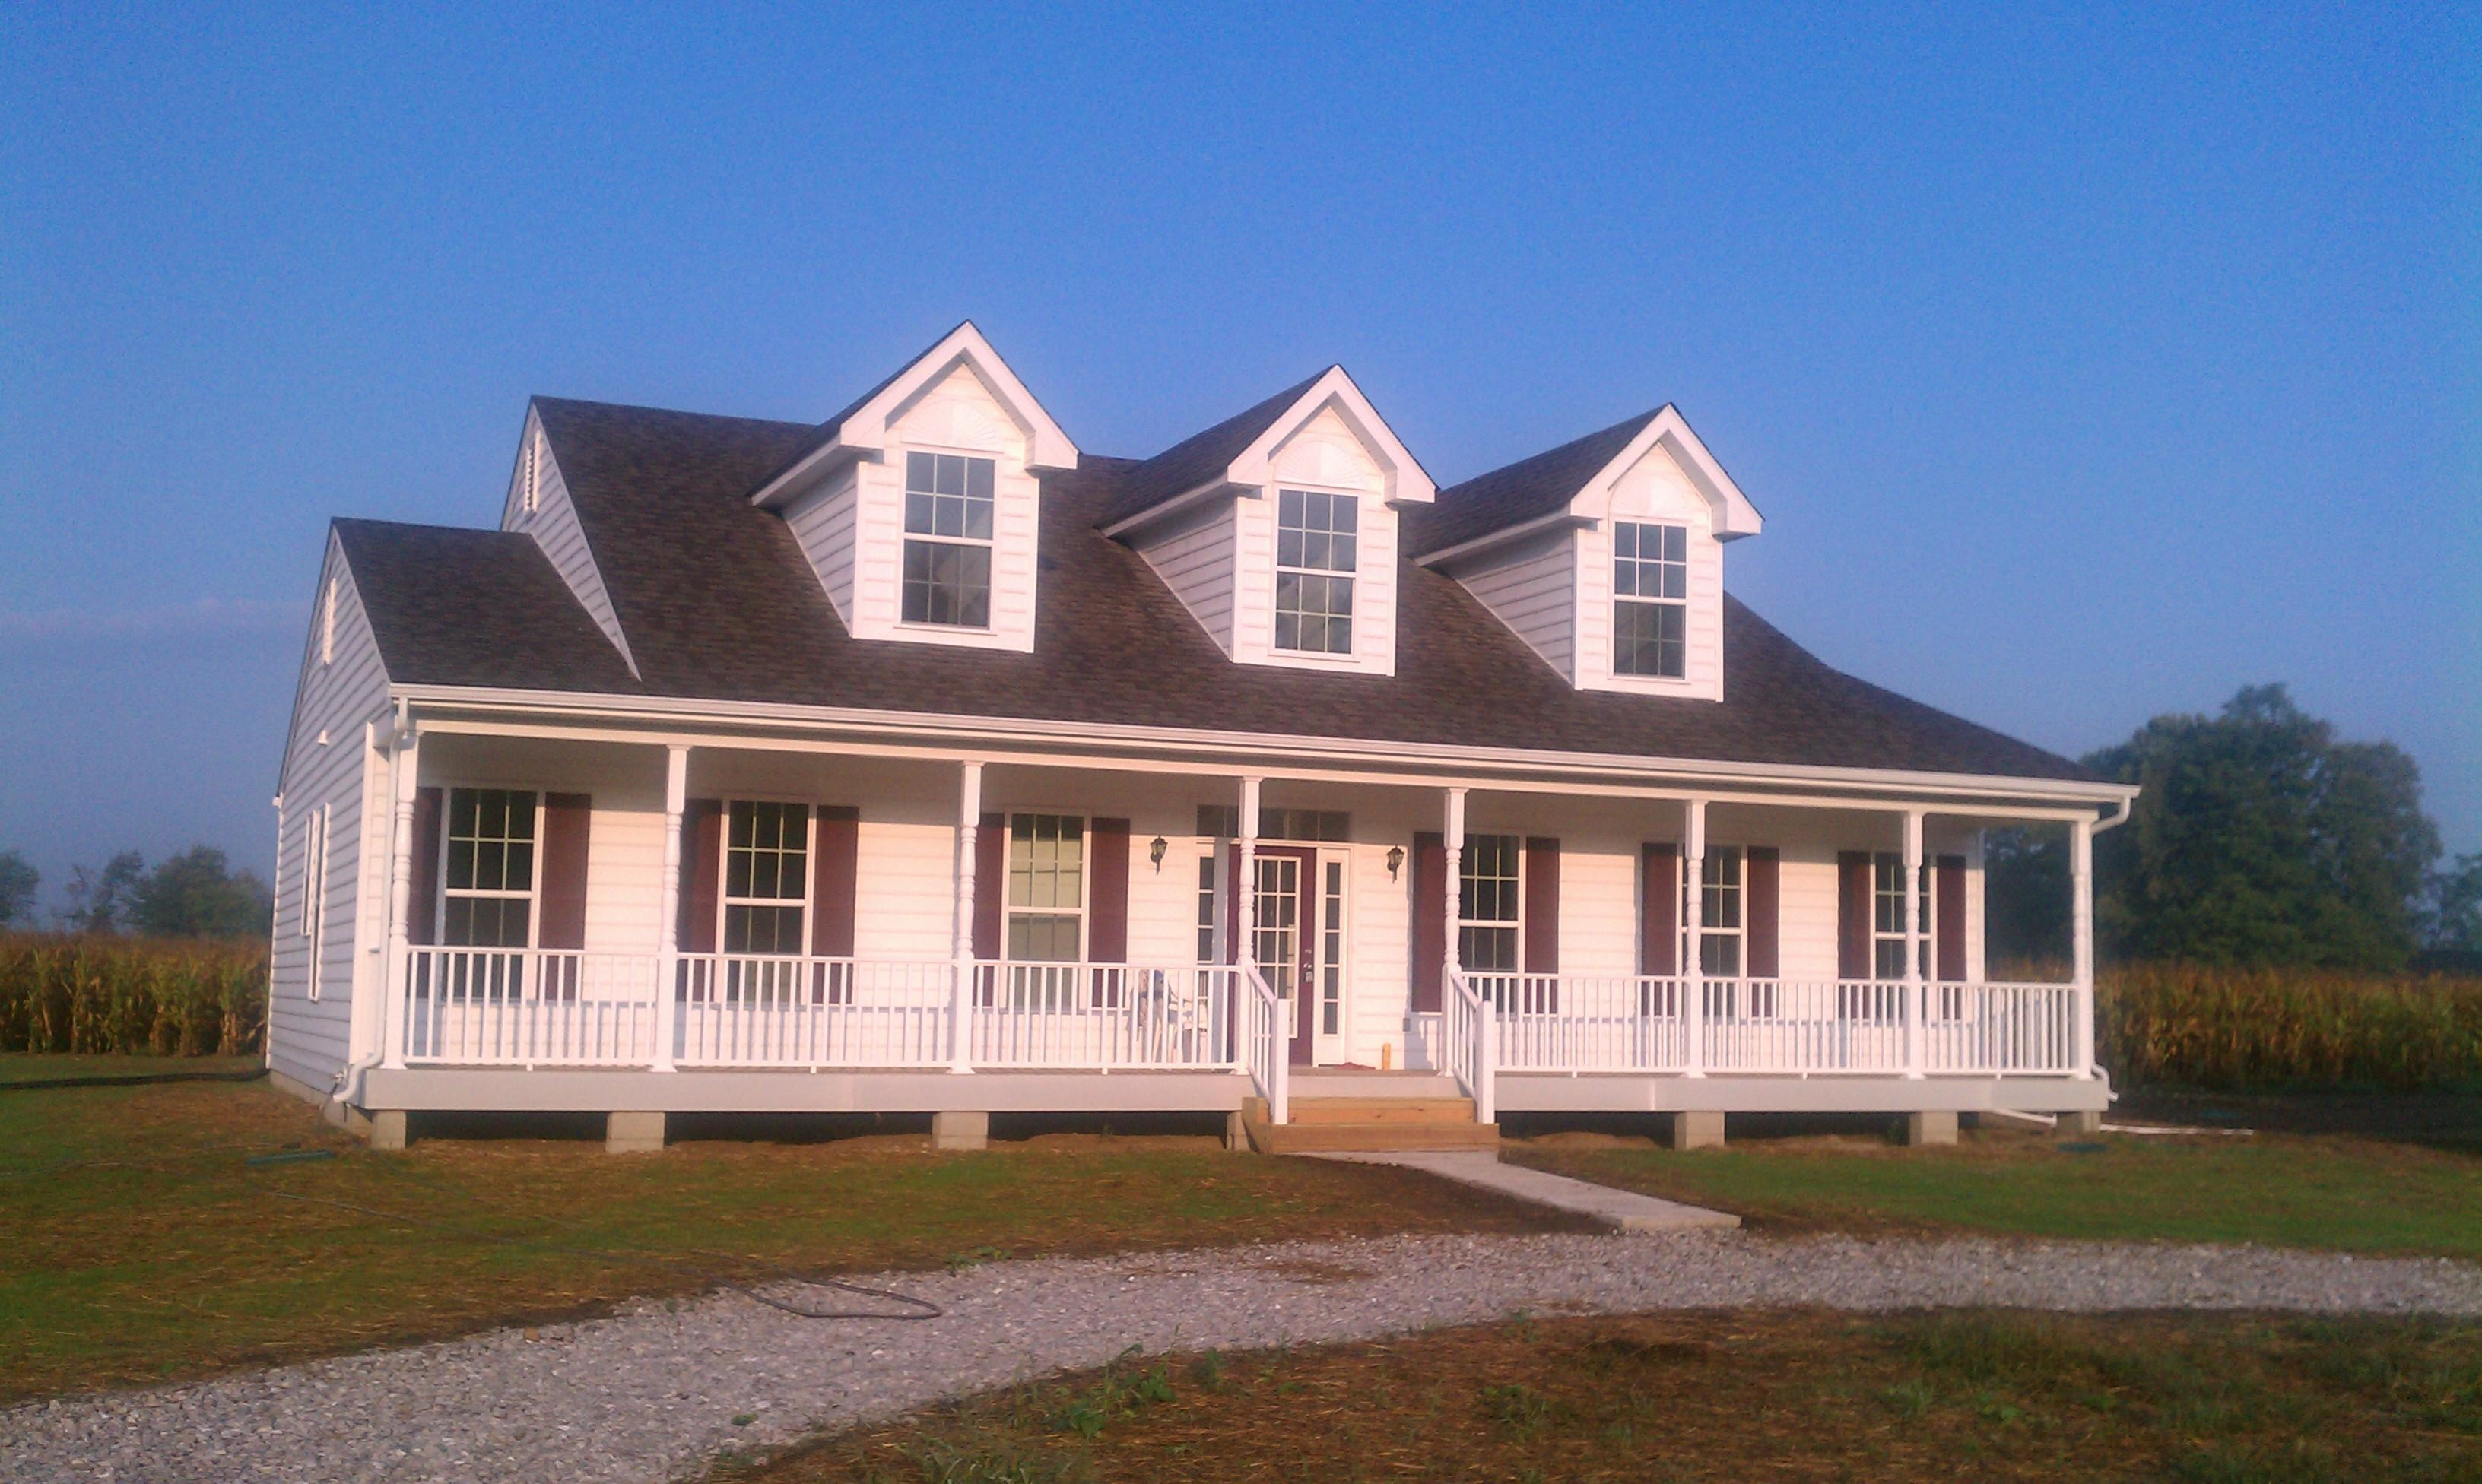 Lockridge homes custom built on your land in farmville va for Homes to build on acreage